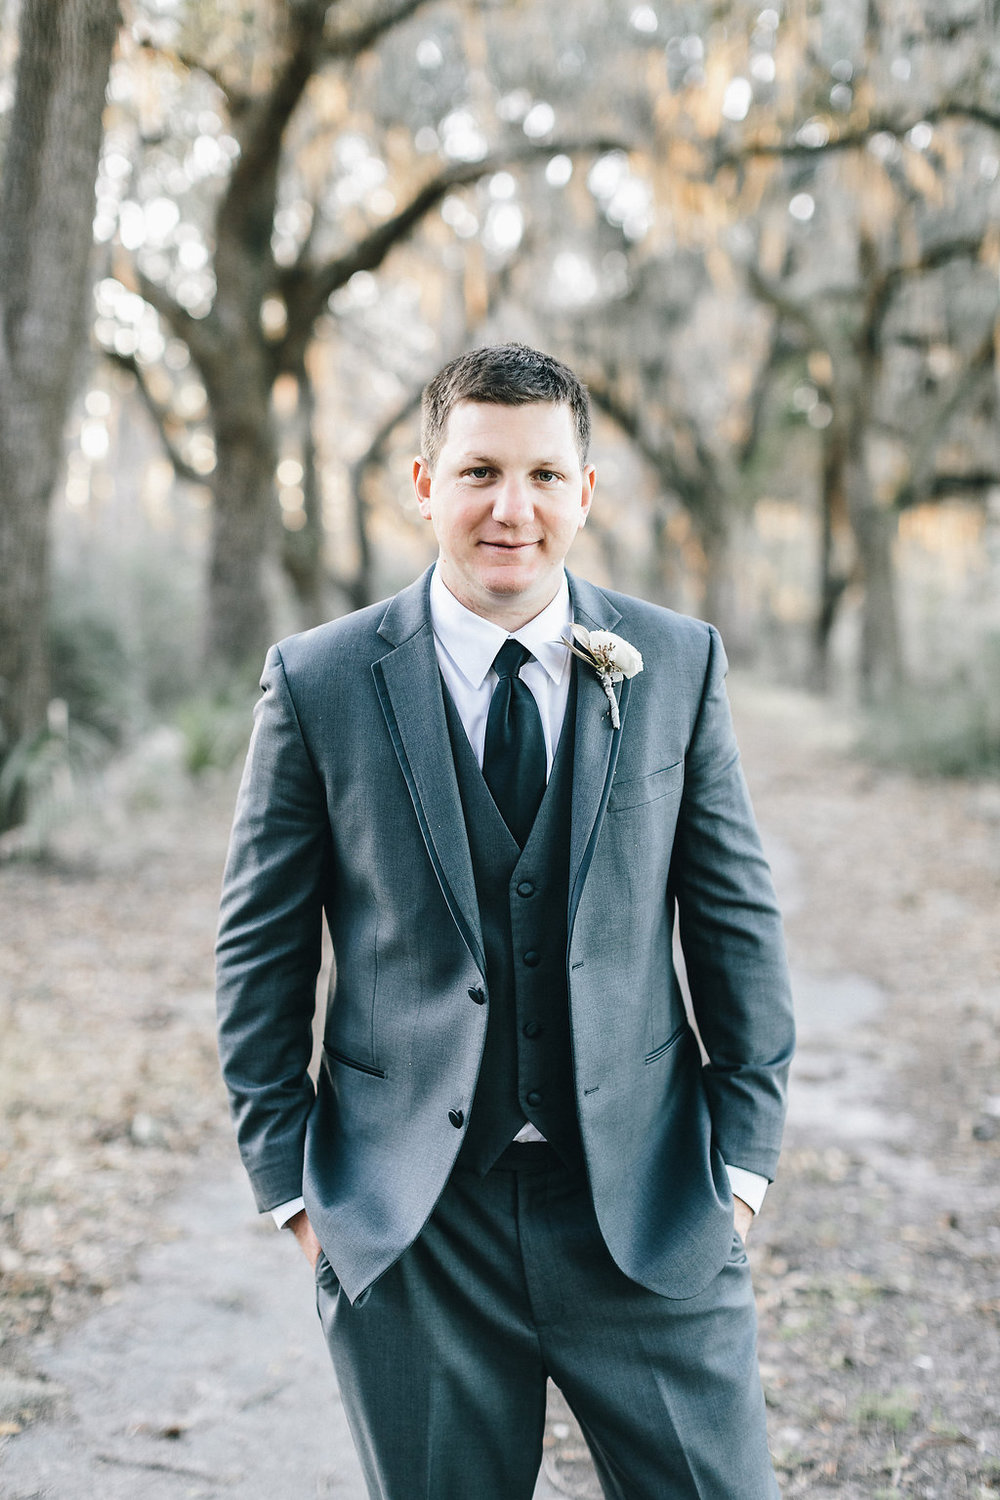 Groom in grey suit at Savannah GA Wedding ceremony by Mackensey Alexander